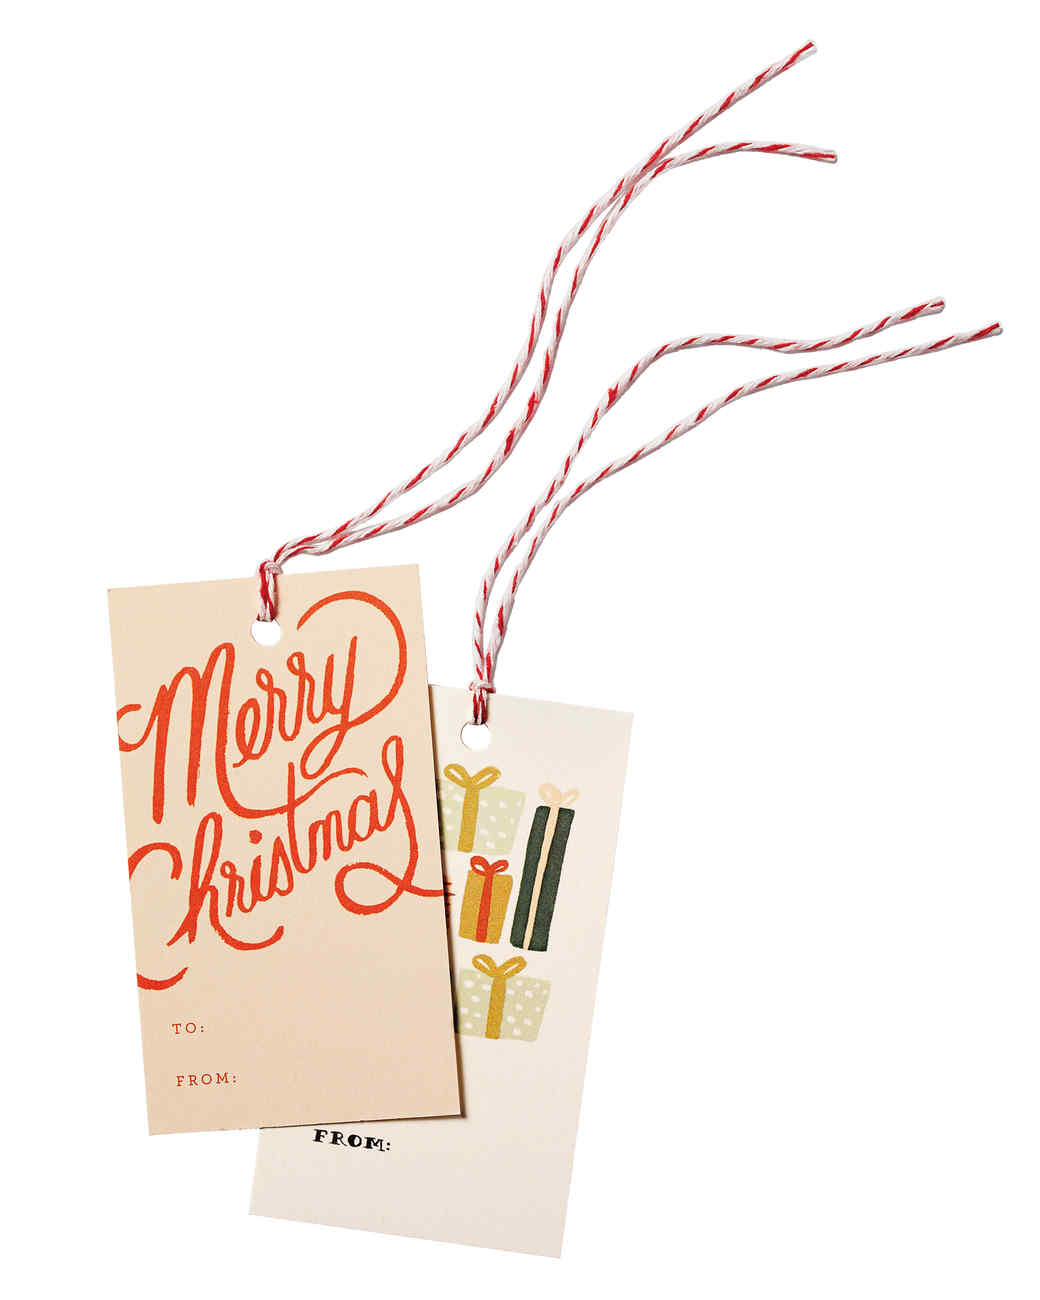 rifle-paper-gift-tags-003-d111473.jpg